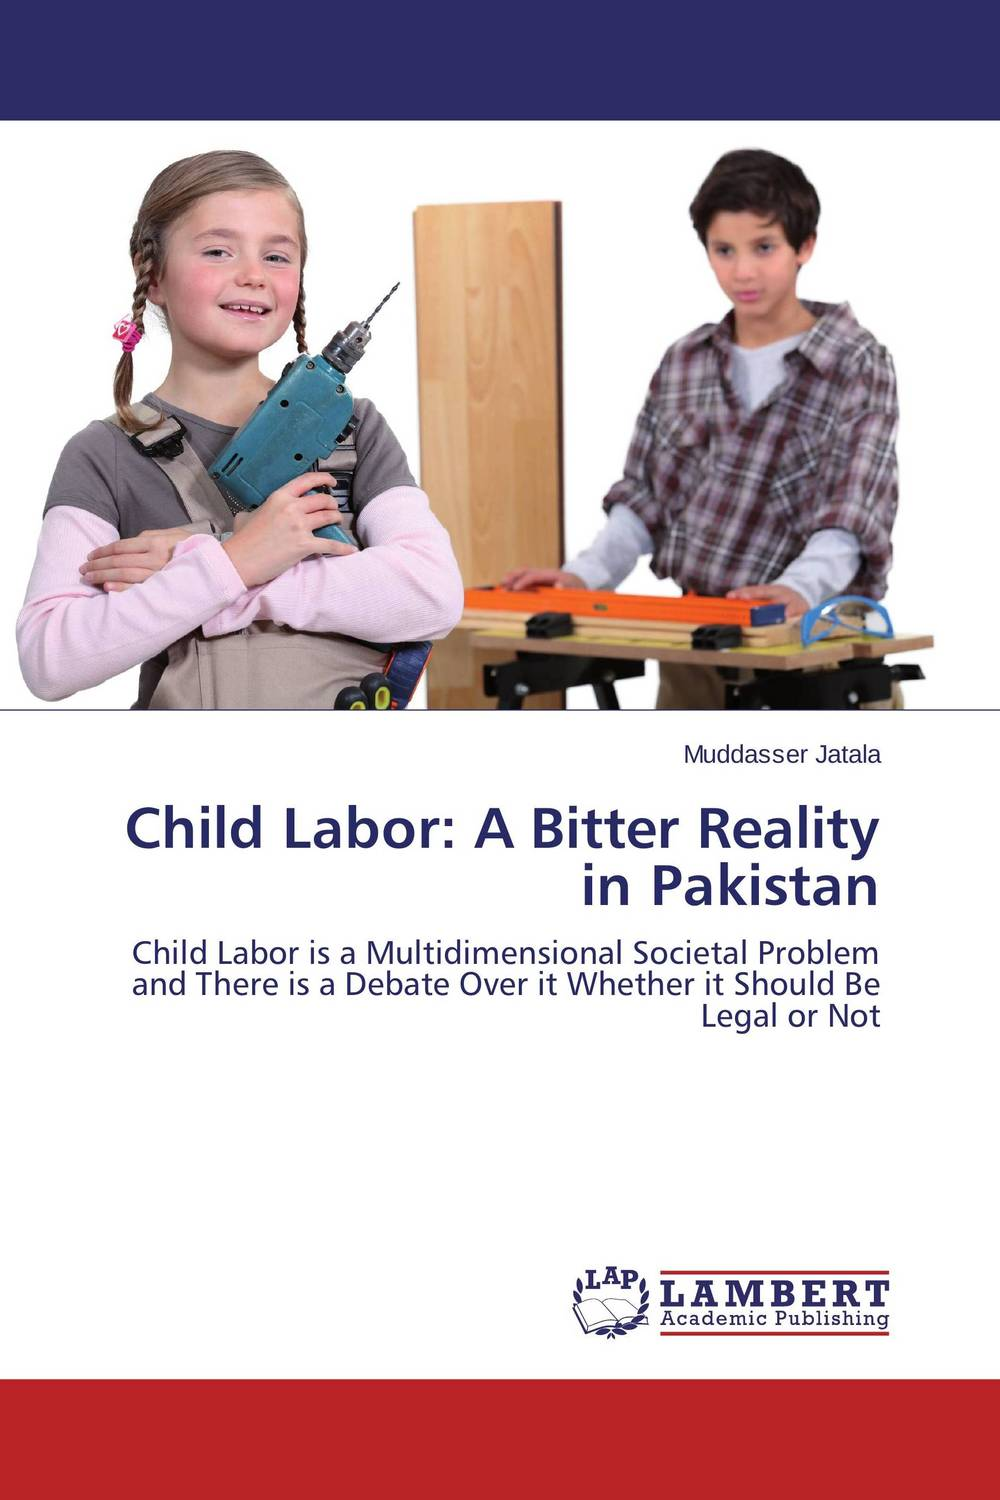 Child Labor: A Bitter Reality in Pakistan